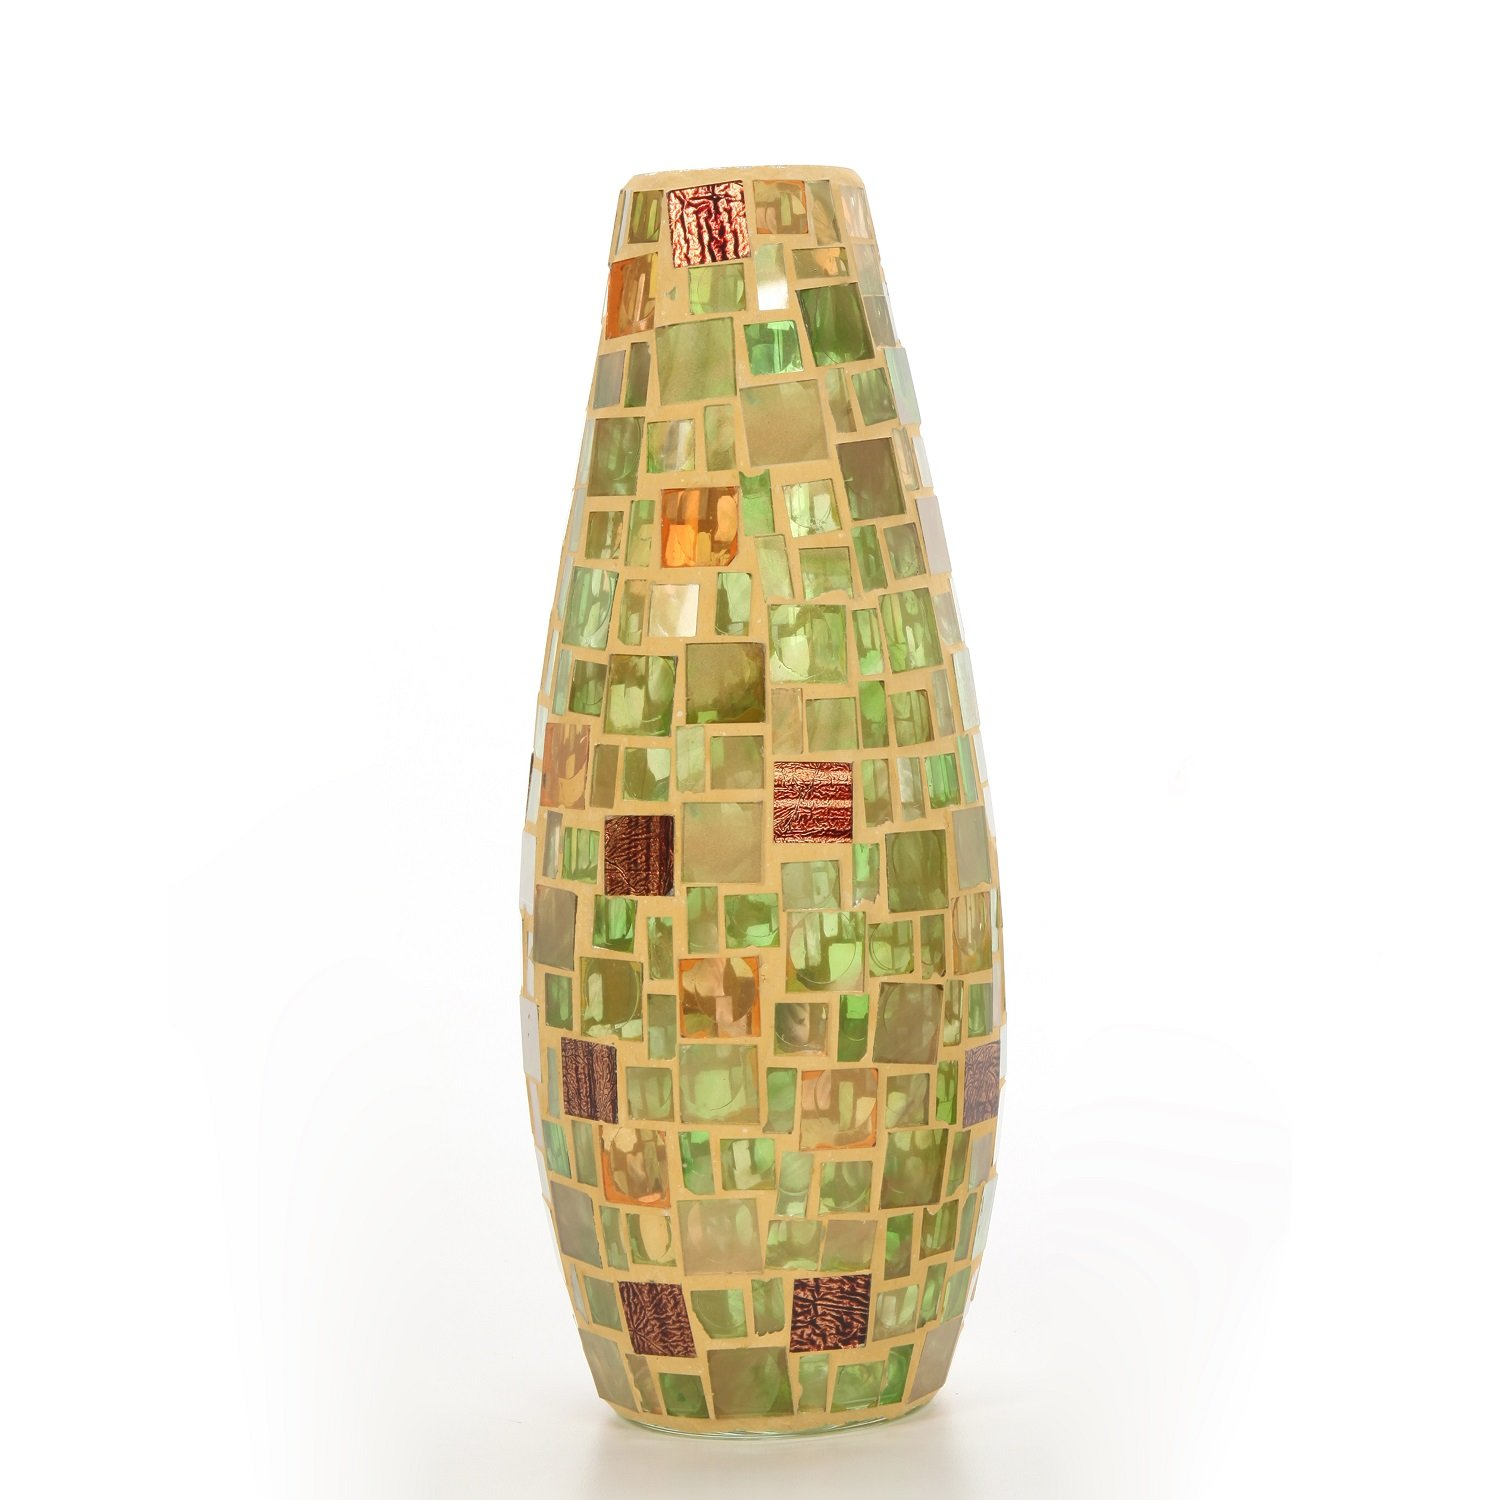 Hosley Mosaic Cream Glass Vase- 11.8'' High. Ideal Gift for Weddings, Spa, Flower Arrangements P2